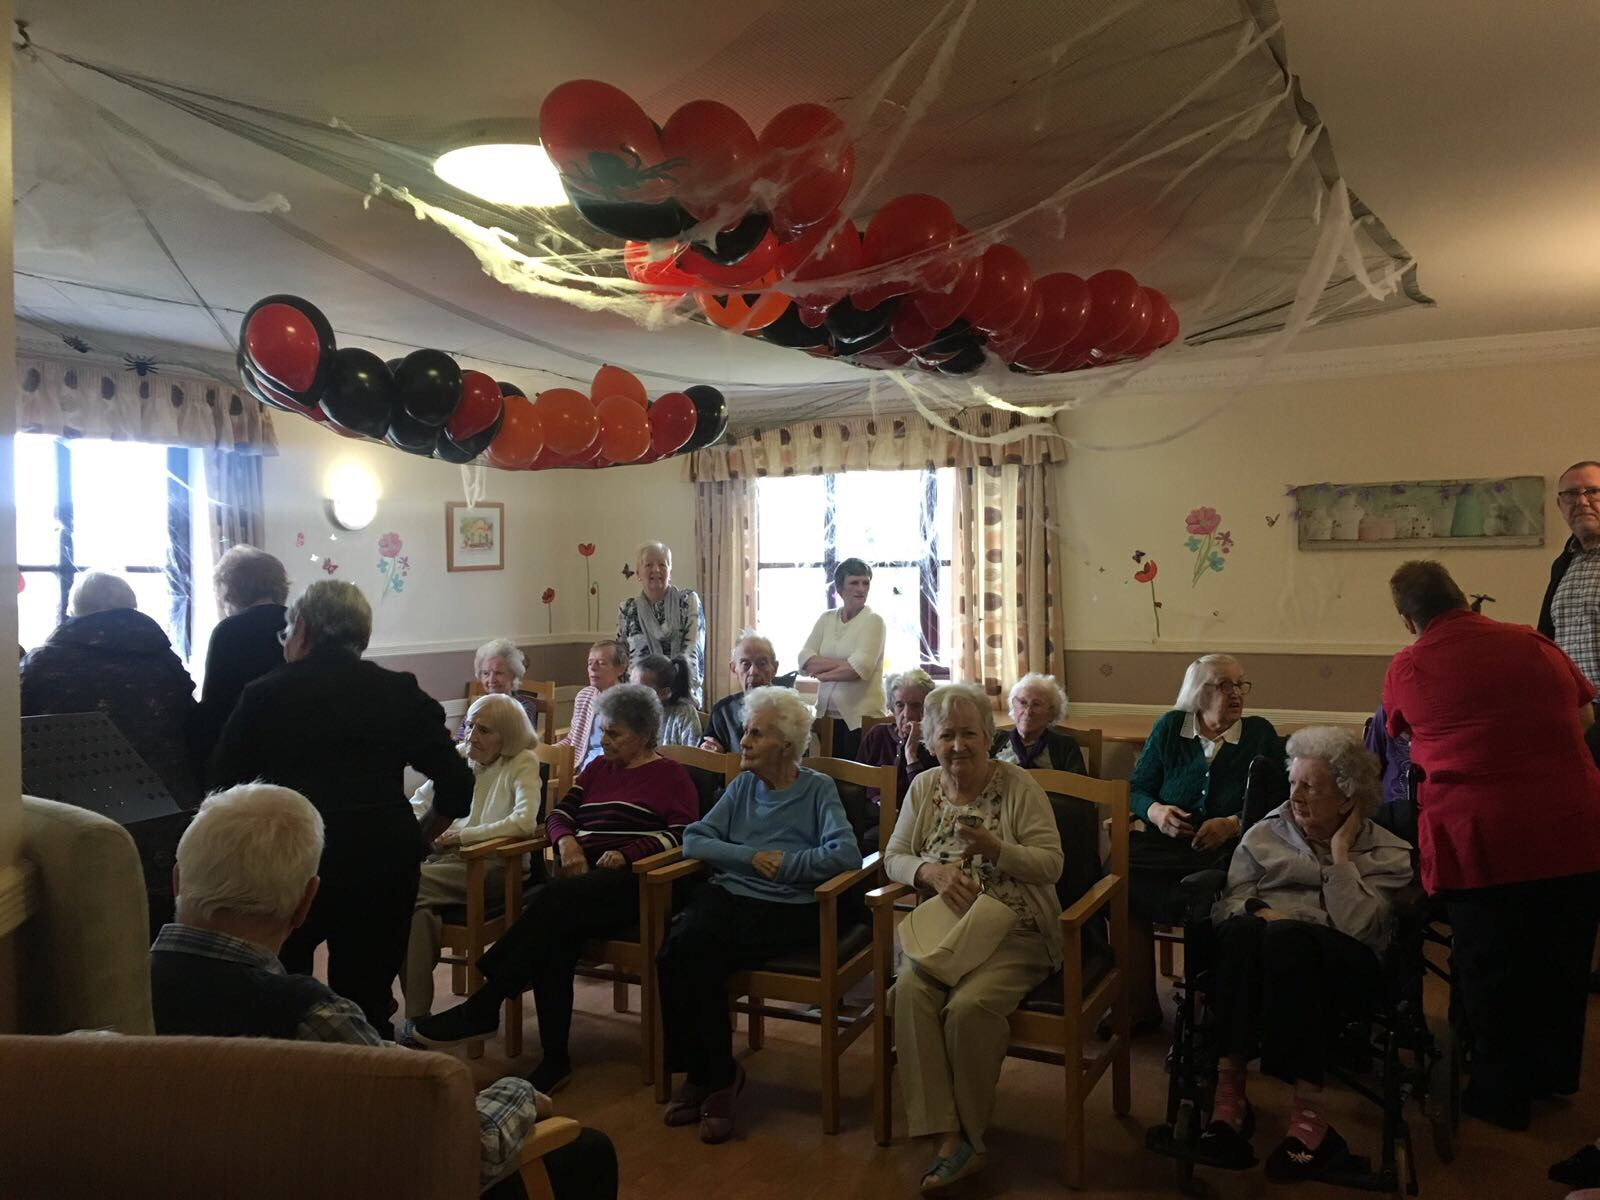 Elizabeth Court Care Centre Halloween Party 2017: Key Healthcare is dedicated to caring for elderly residents in safe. We have multiple dementia care homes including our care home middlesbrough, our care home St. Helen and care home saltburn. We excel in monitoring and improving care levels.